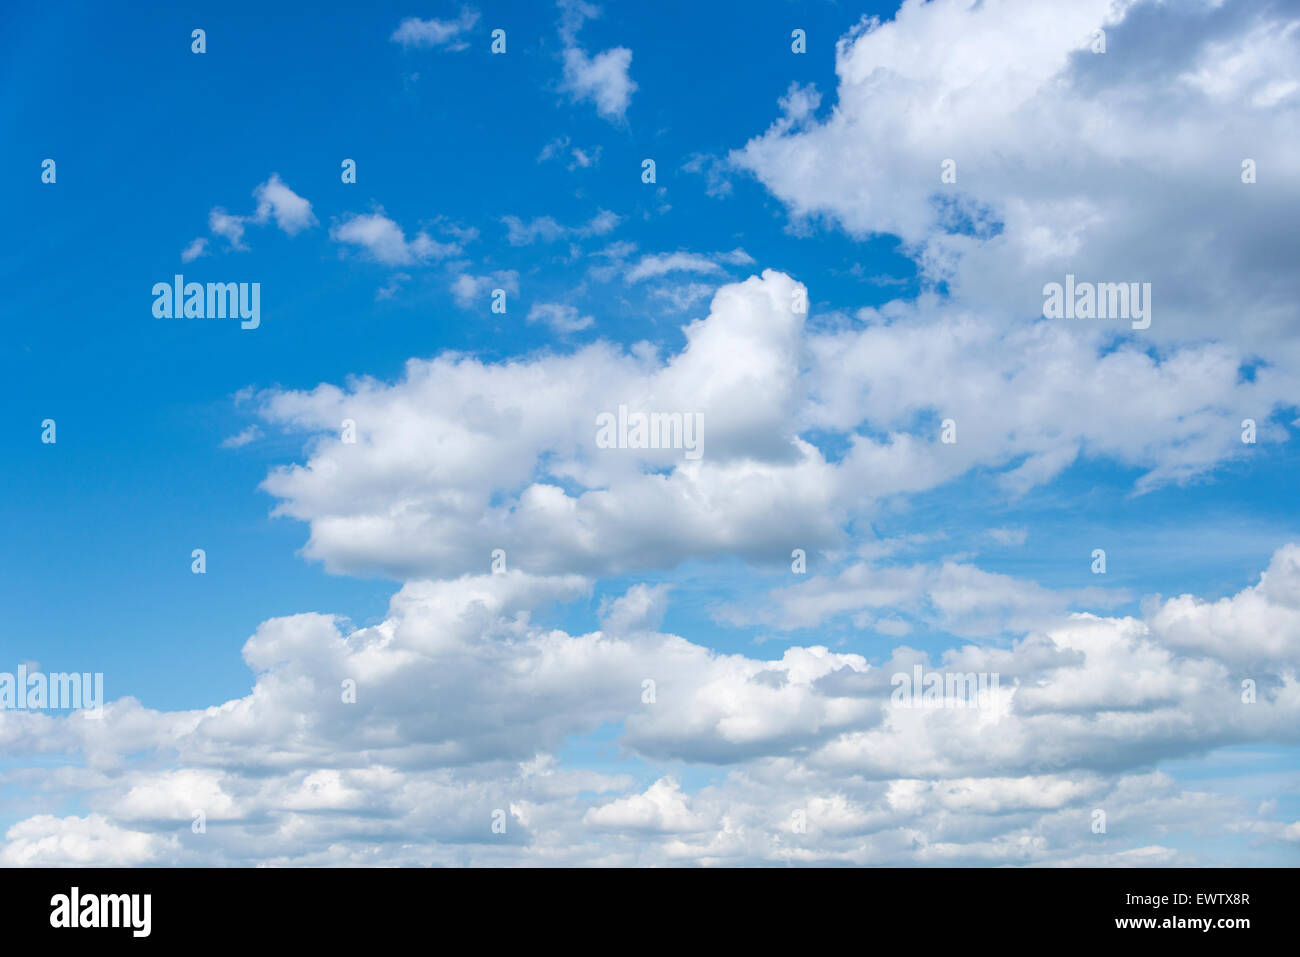 White cumulus clouds and blue sky, North Sea, Northern Europe - Stock Image